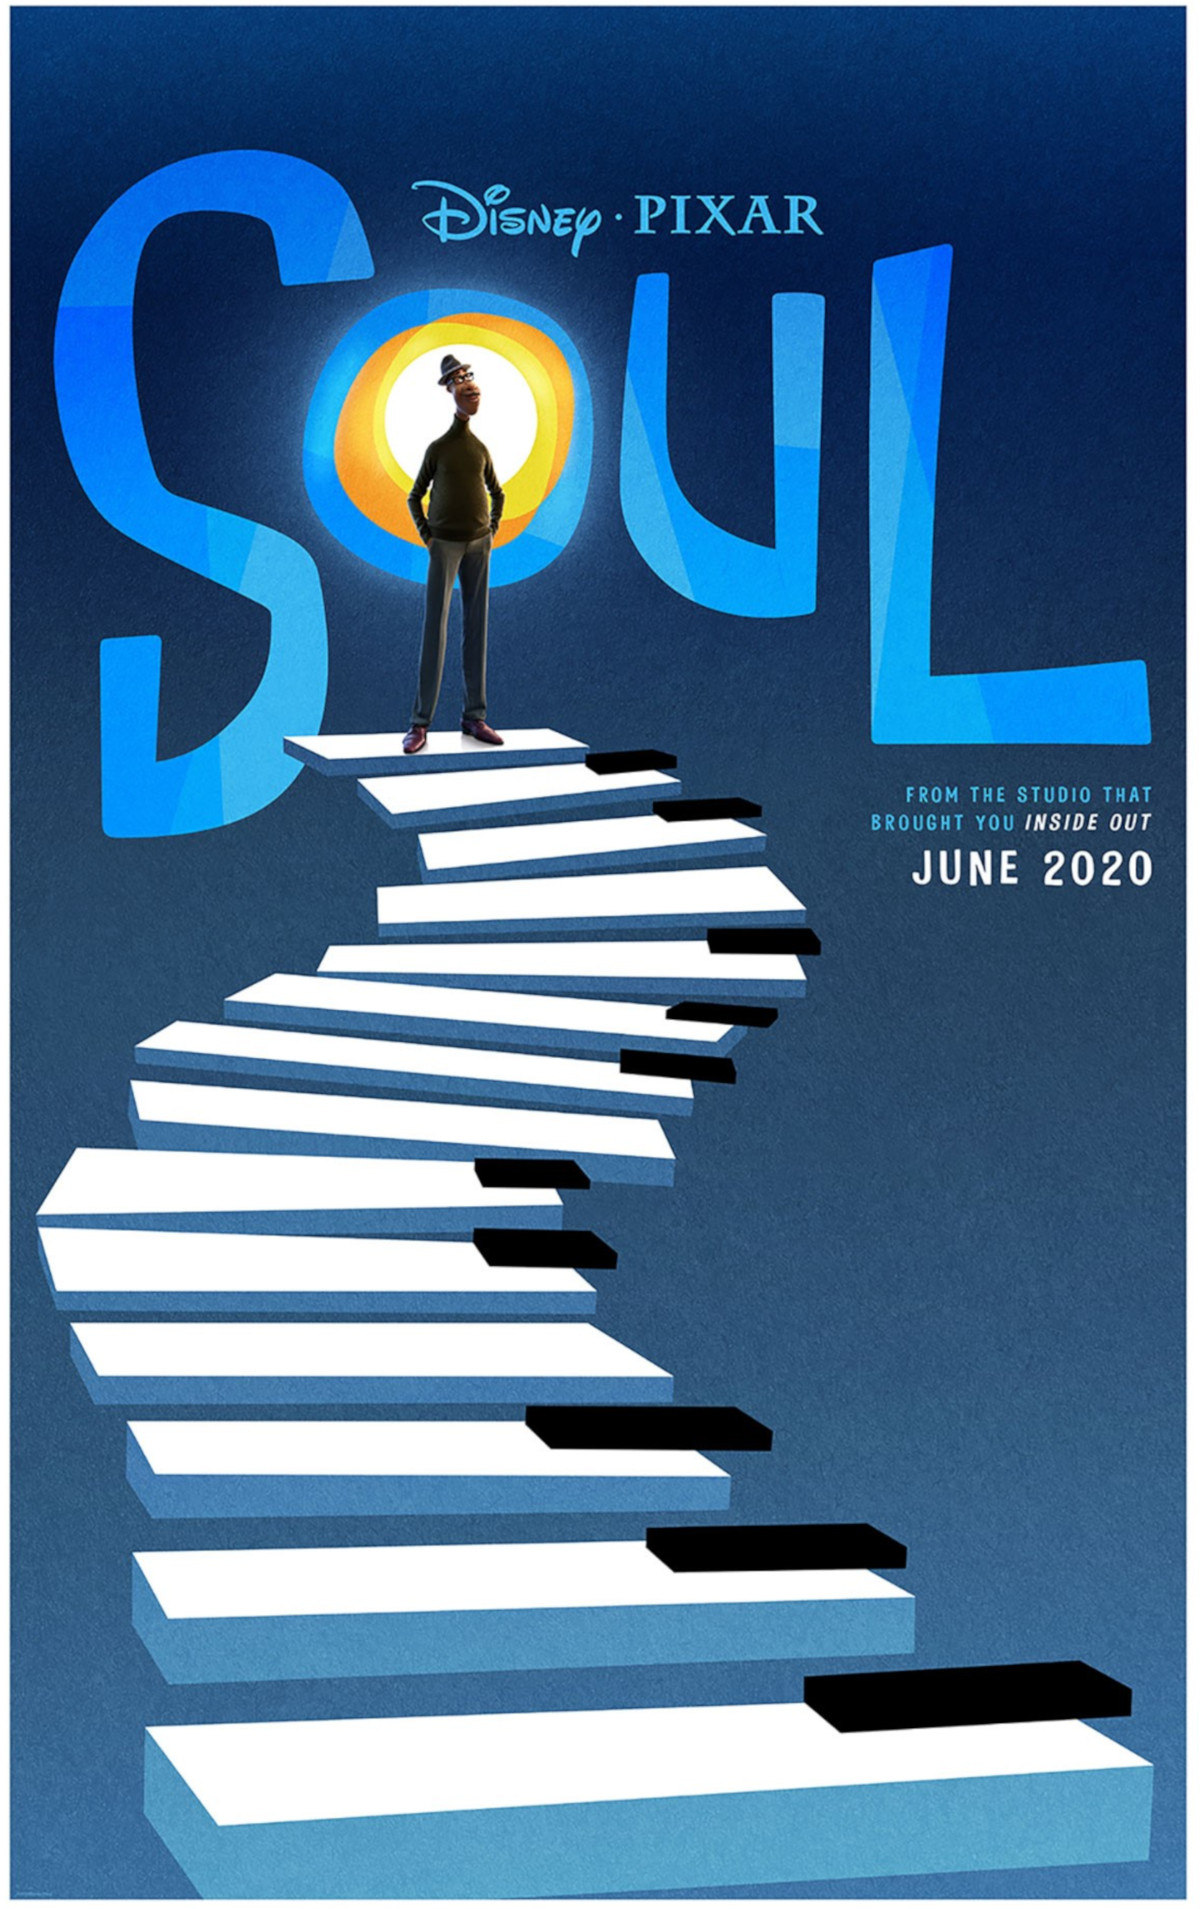 Pixar Drops Trailer and Poster for Pete Docter's New Film, 'Soul' |  Animation World Network